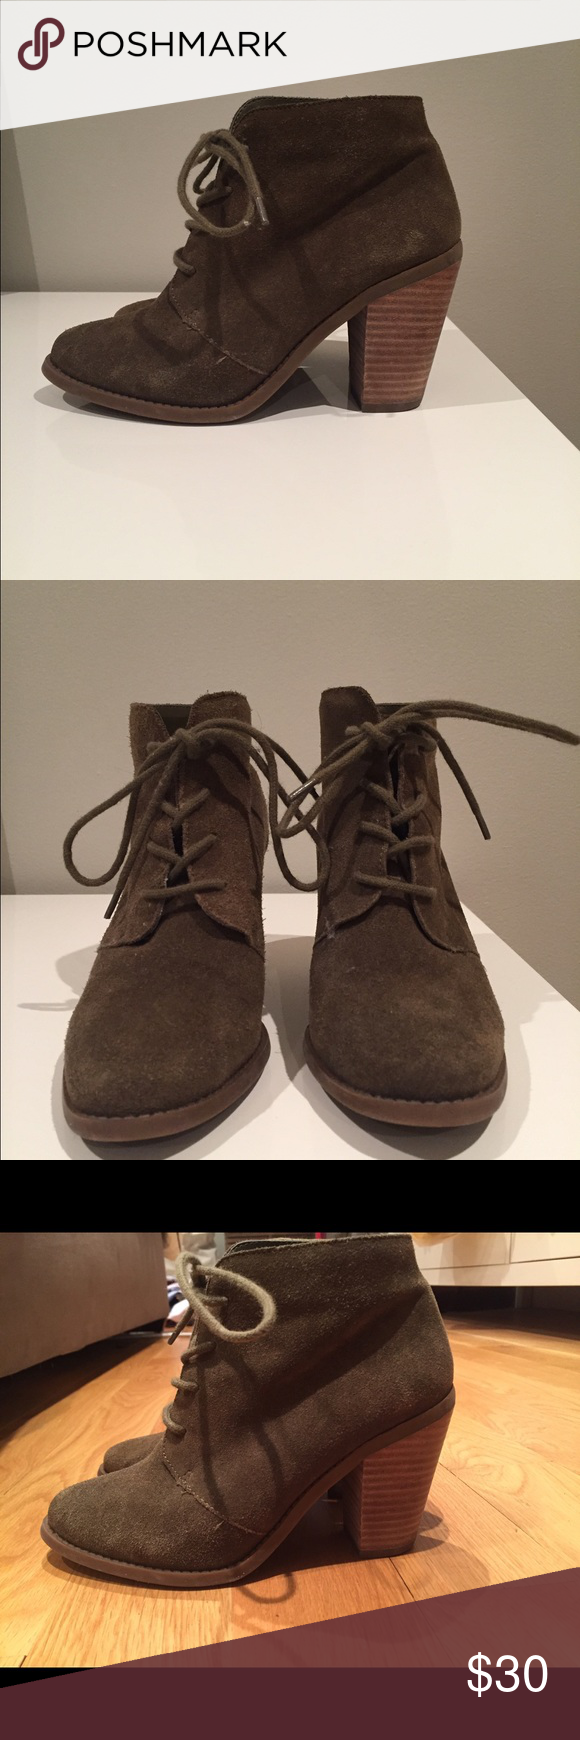 Jessica Simpson Suede lace up booties Love suede lace up Jessica Simpson Shoes Ankle Boots & Booties